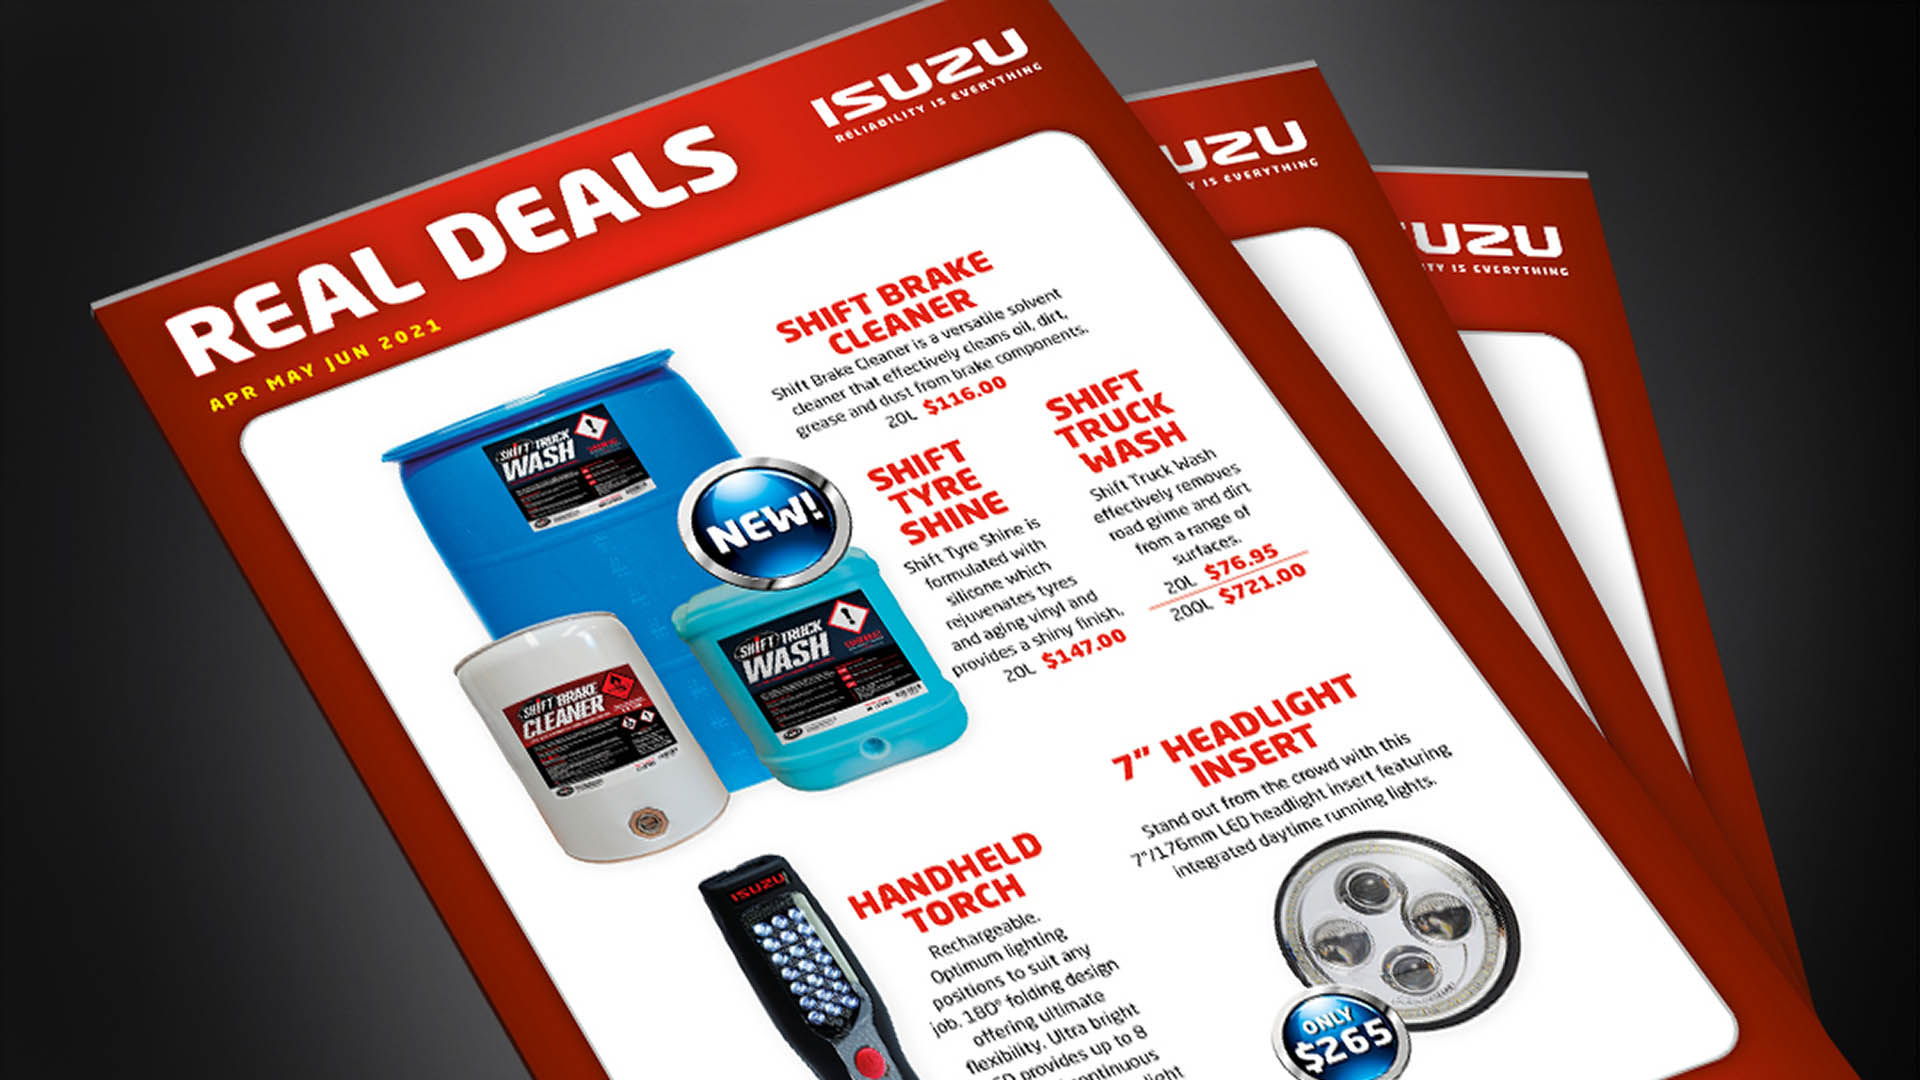 Isuzu Truck real deals